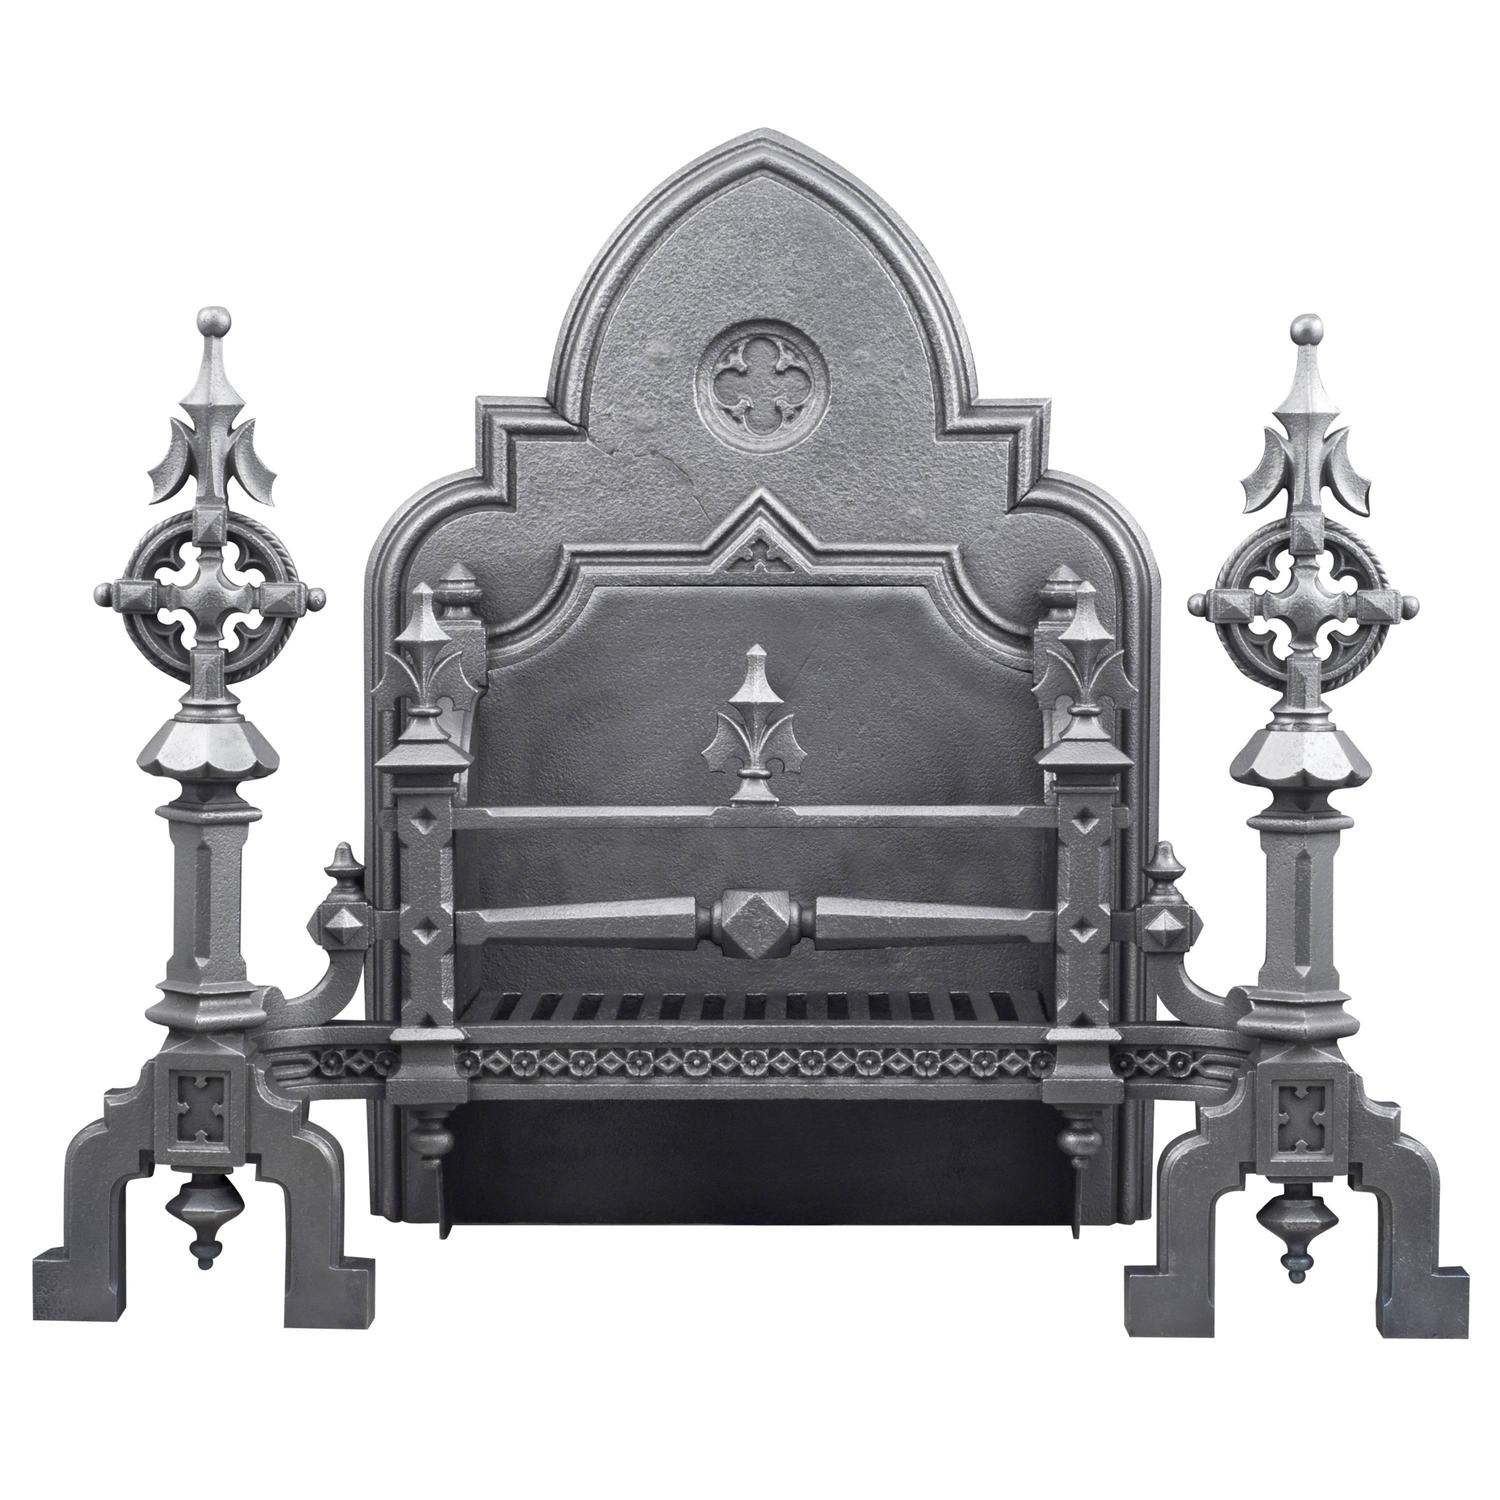 federation fires iron cast fireplaces img grate inserts gas trading fireplace